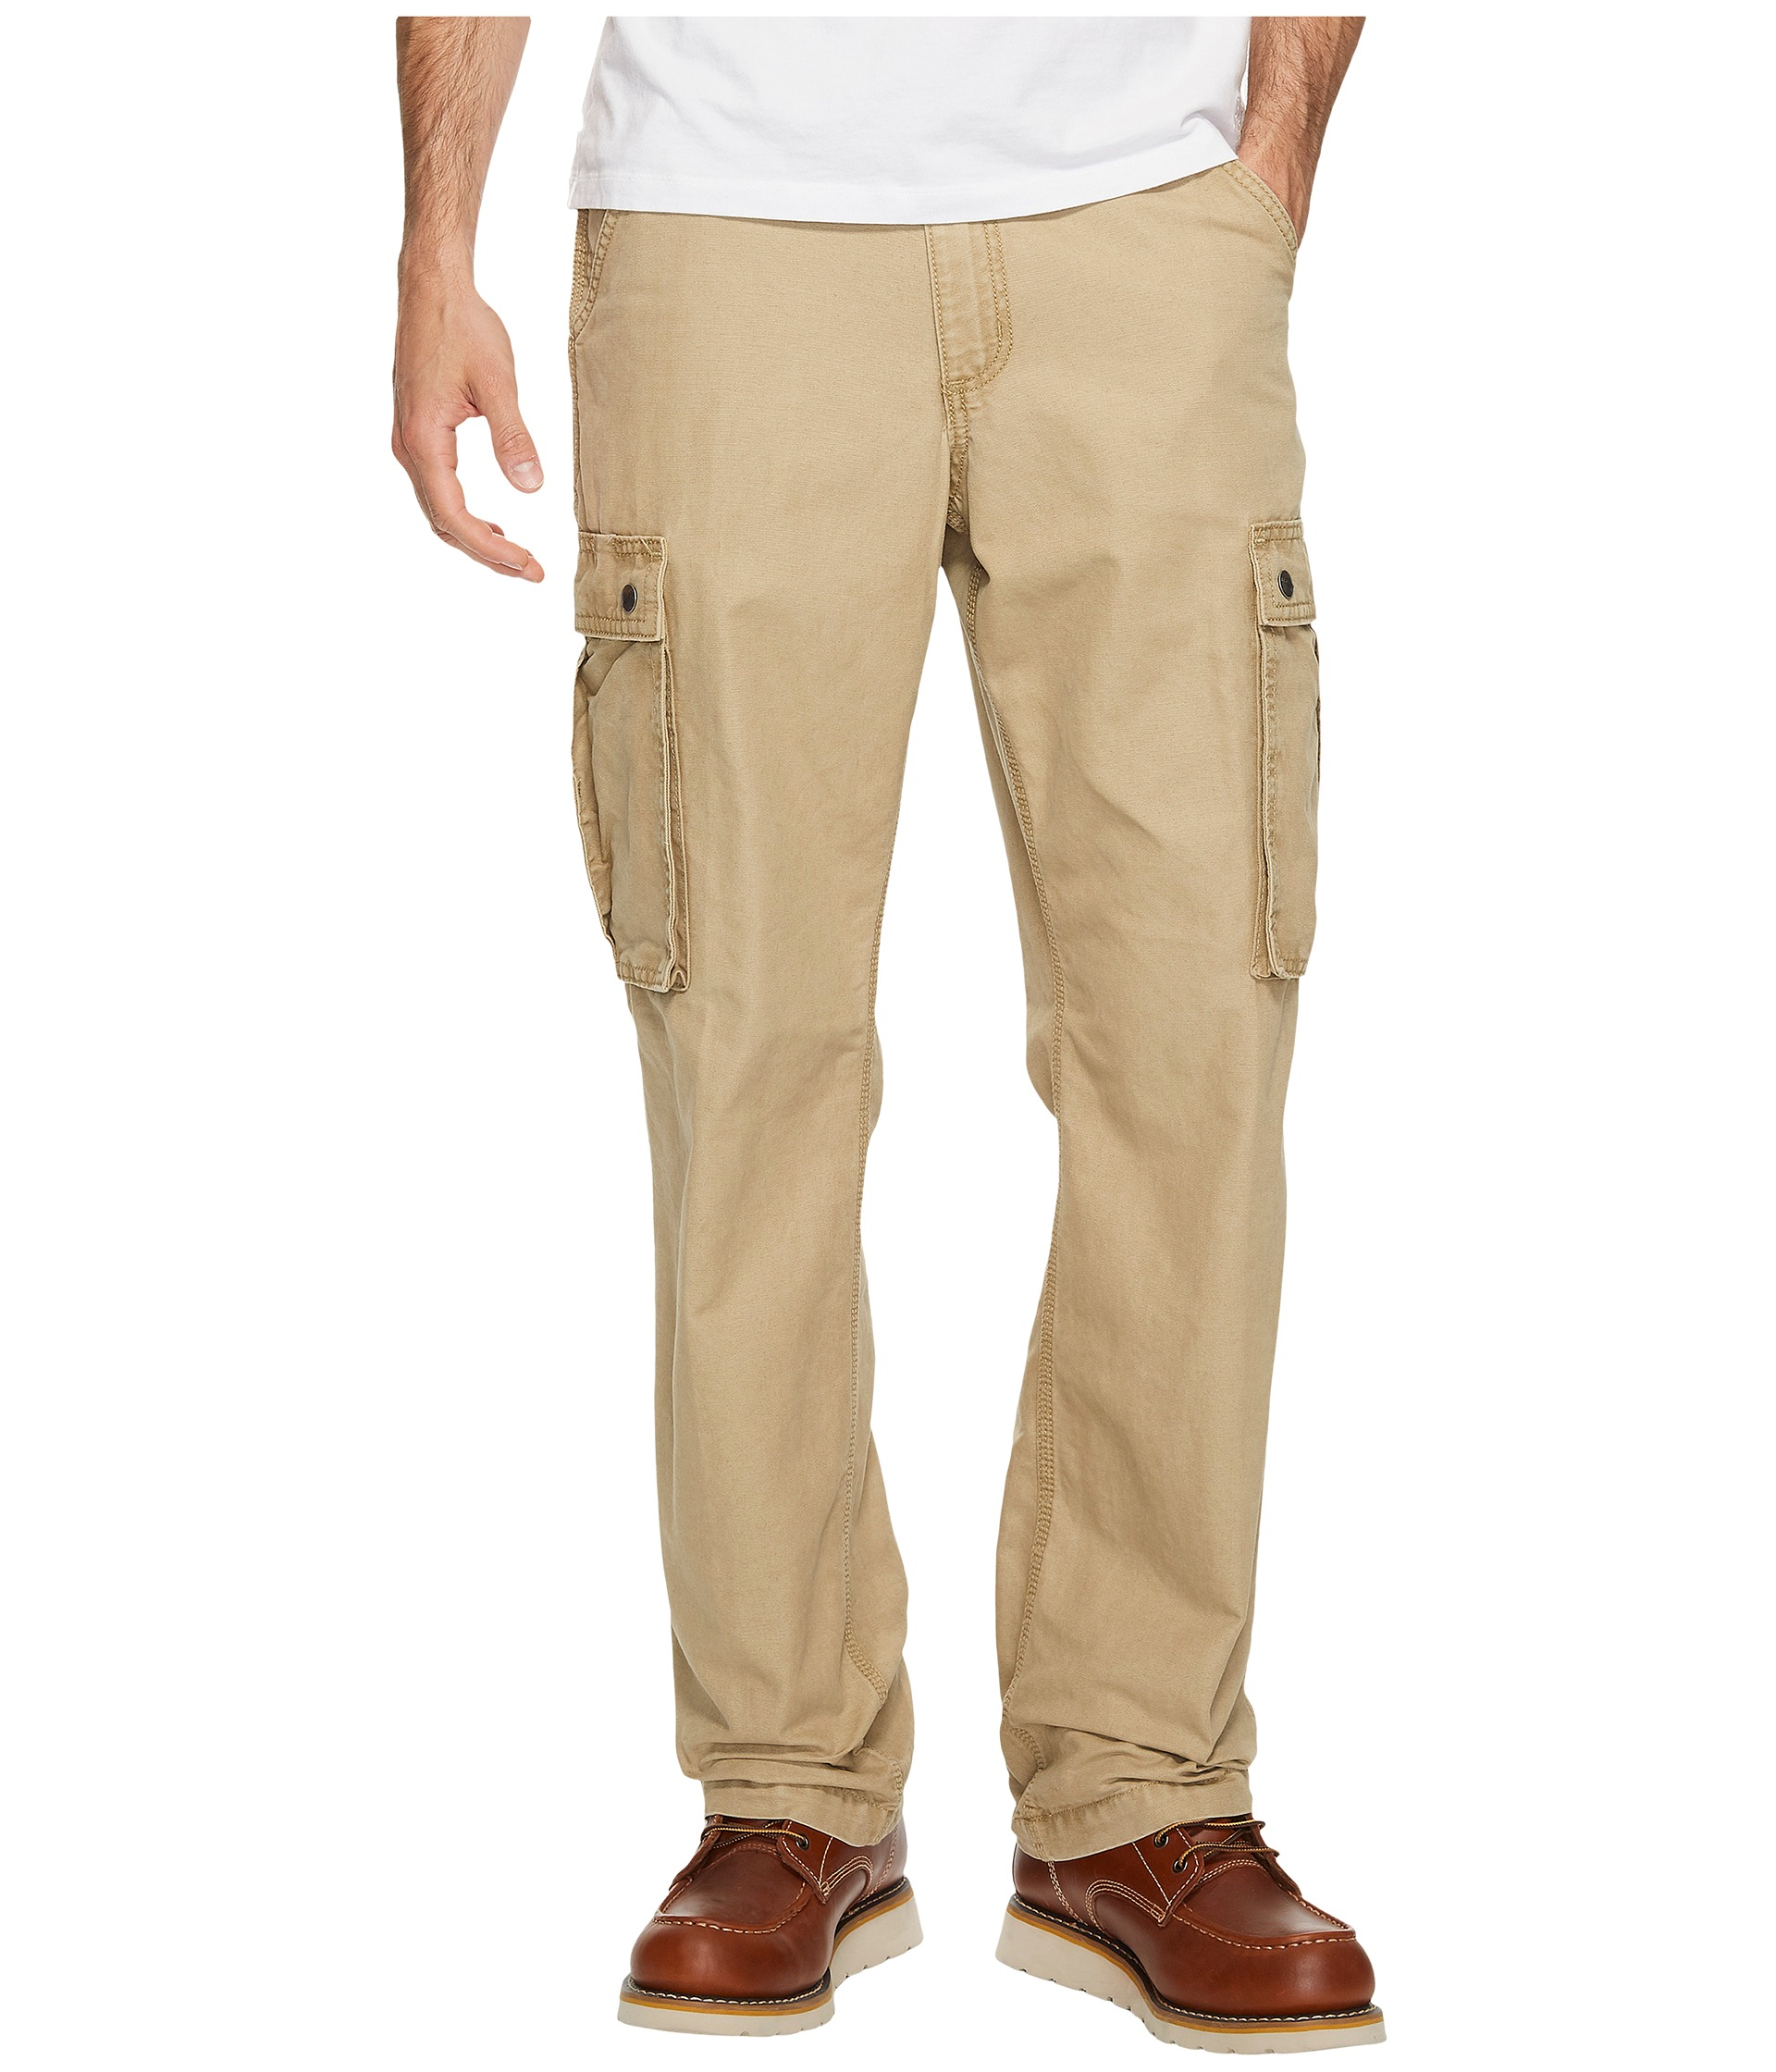 Carhartt Rugged Cargo Pant - Zappos.com Free Shipping BOTH Ways